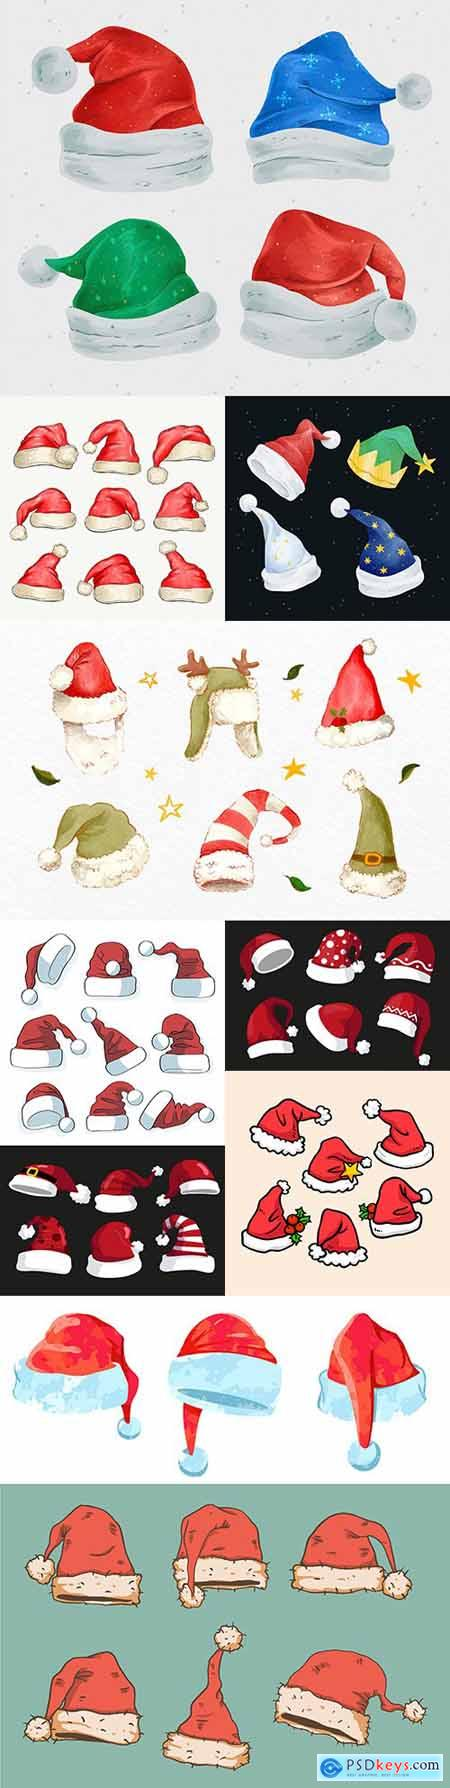 Santa Claus hat cartoon Christmas icons set isolated